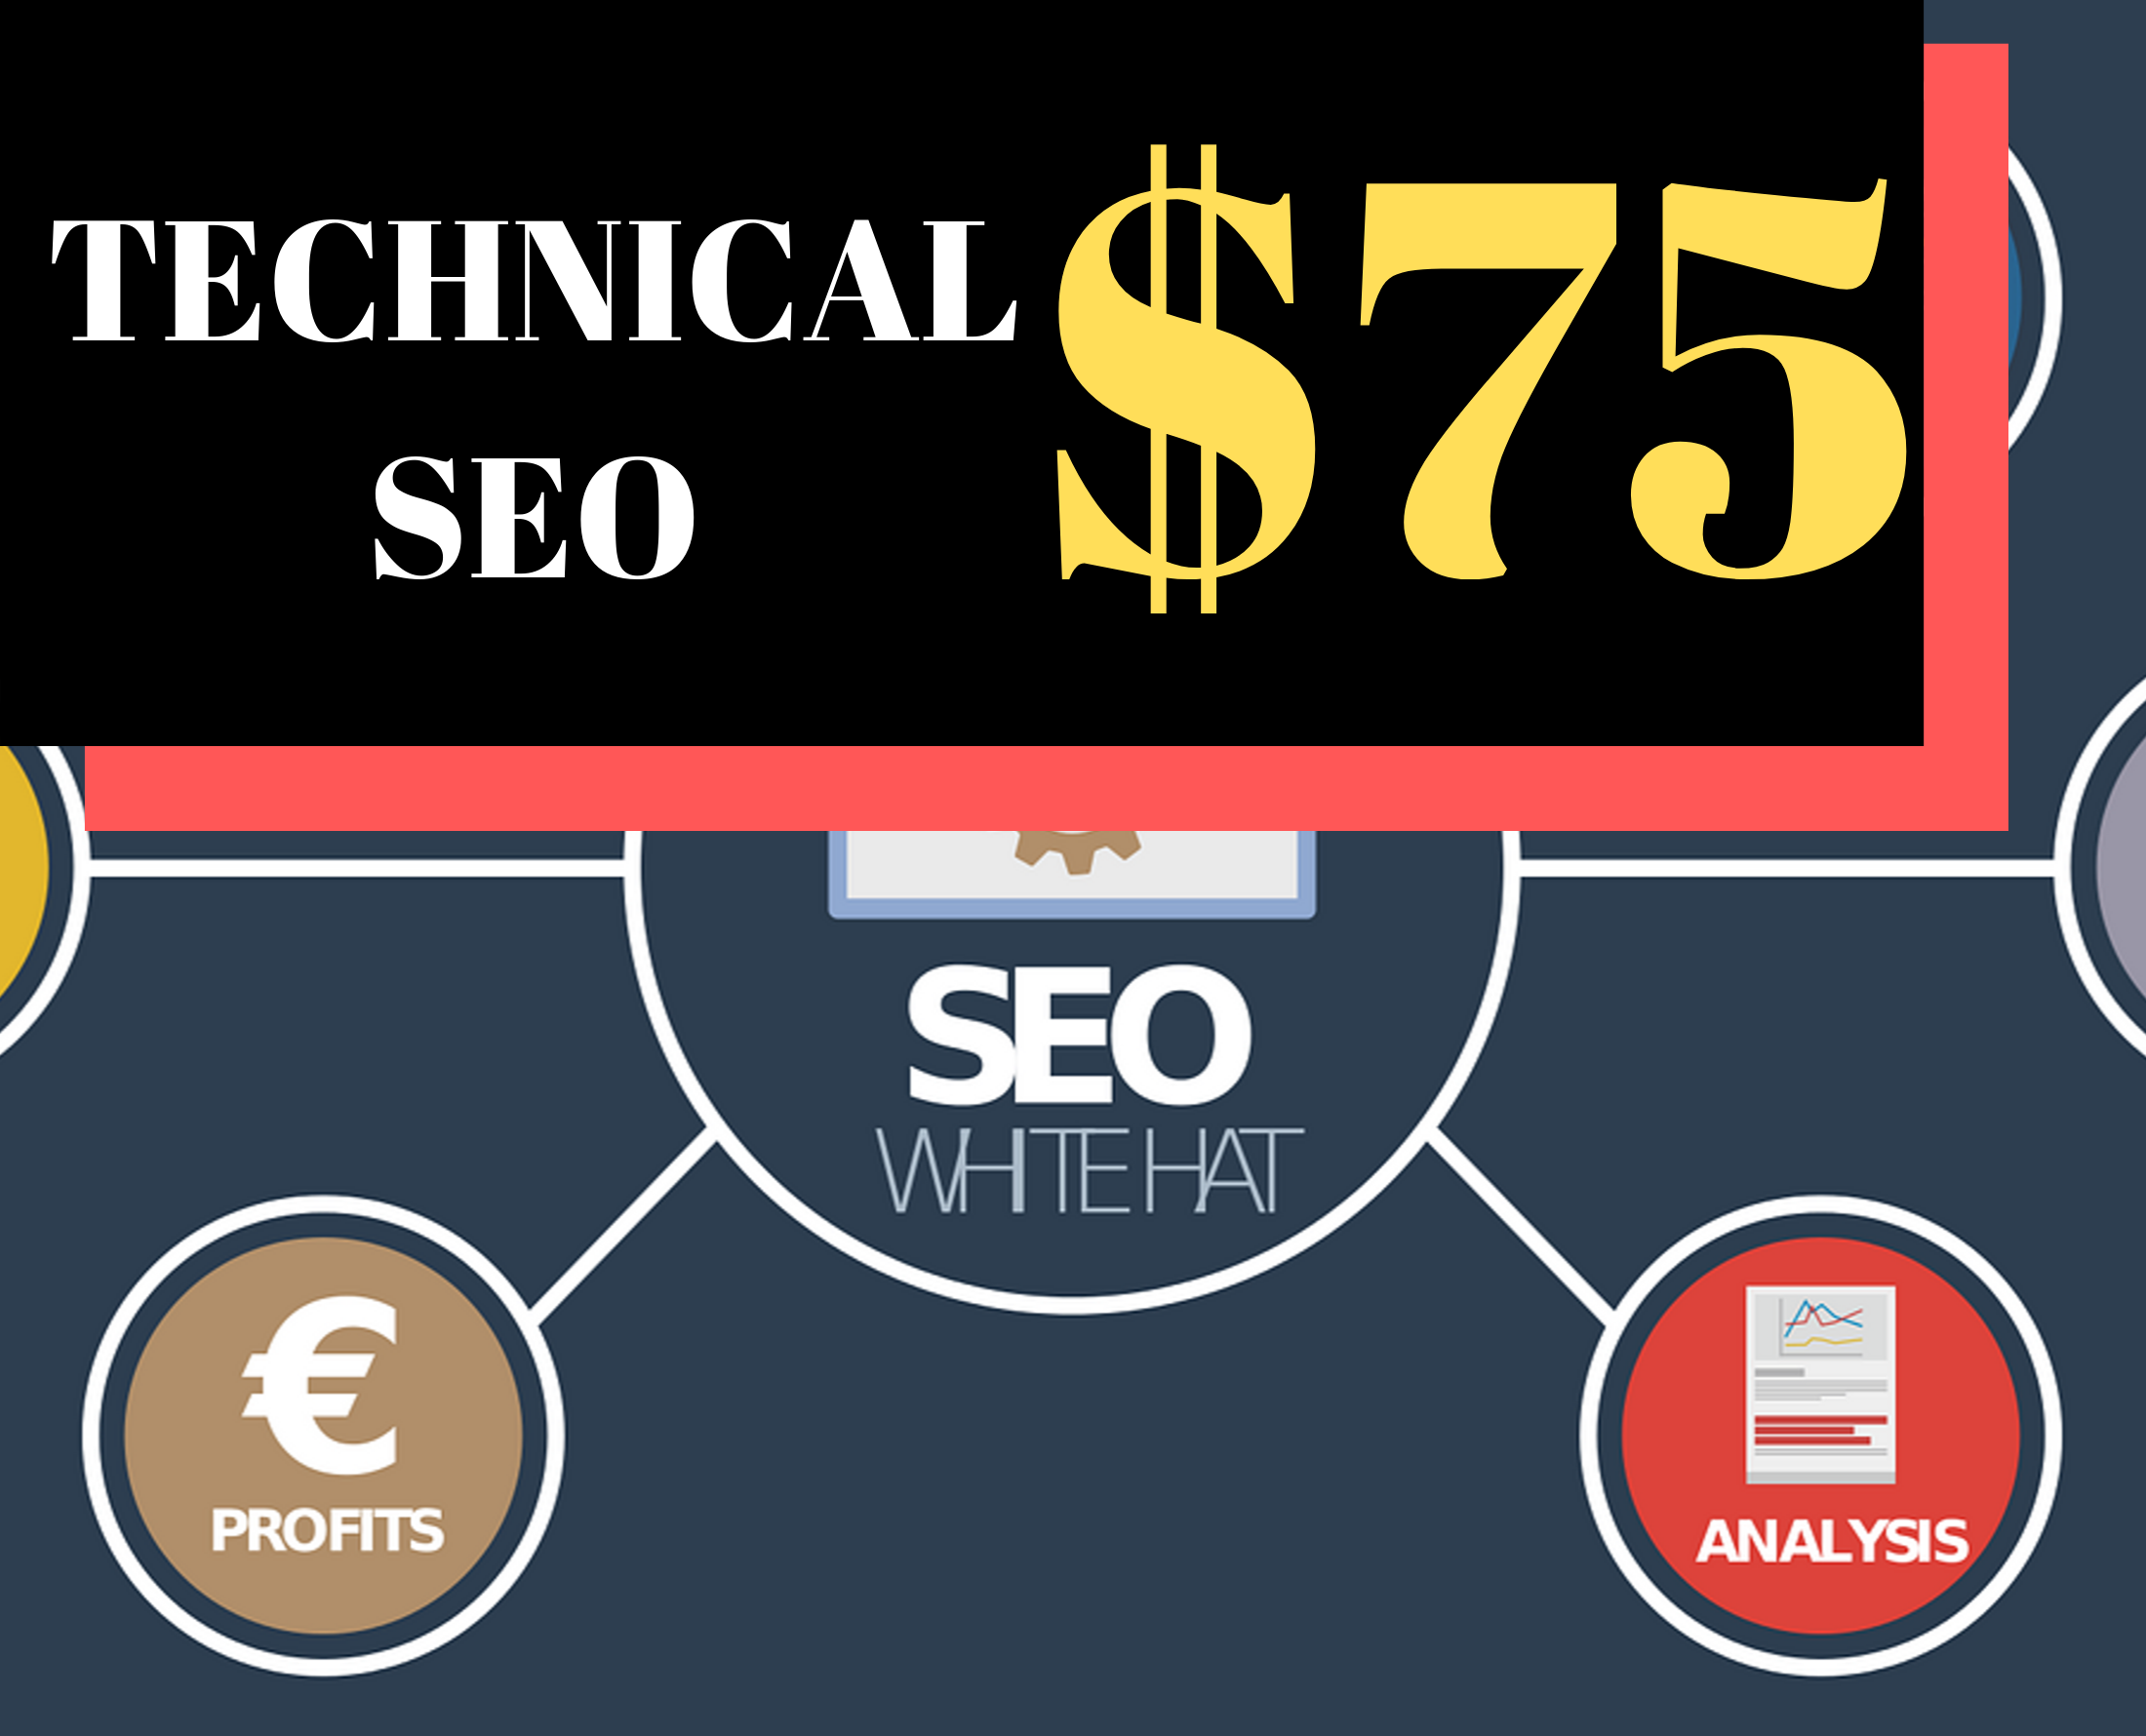 Complete Technical SEO,  SEO AUDIT- 2 DAY DELIVERY